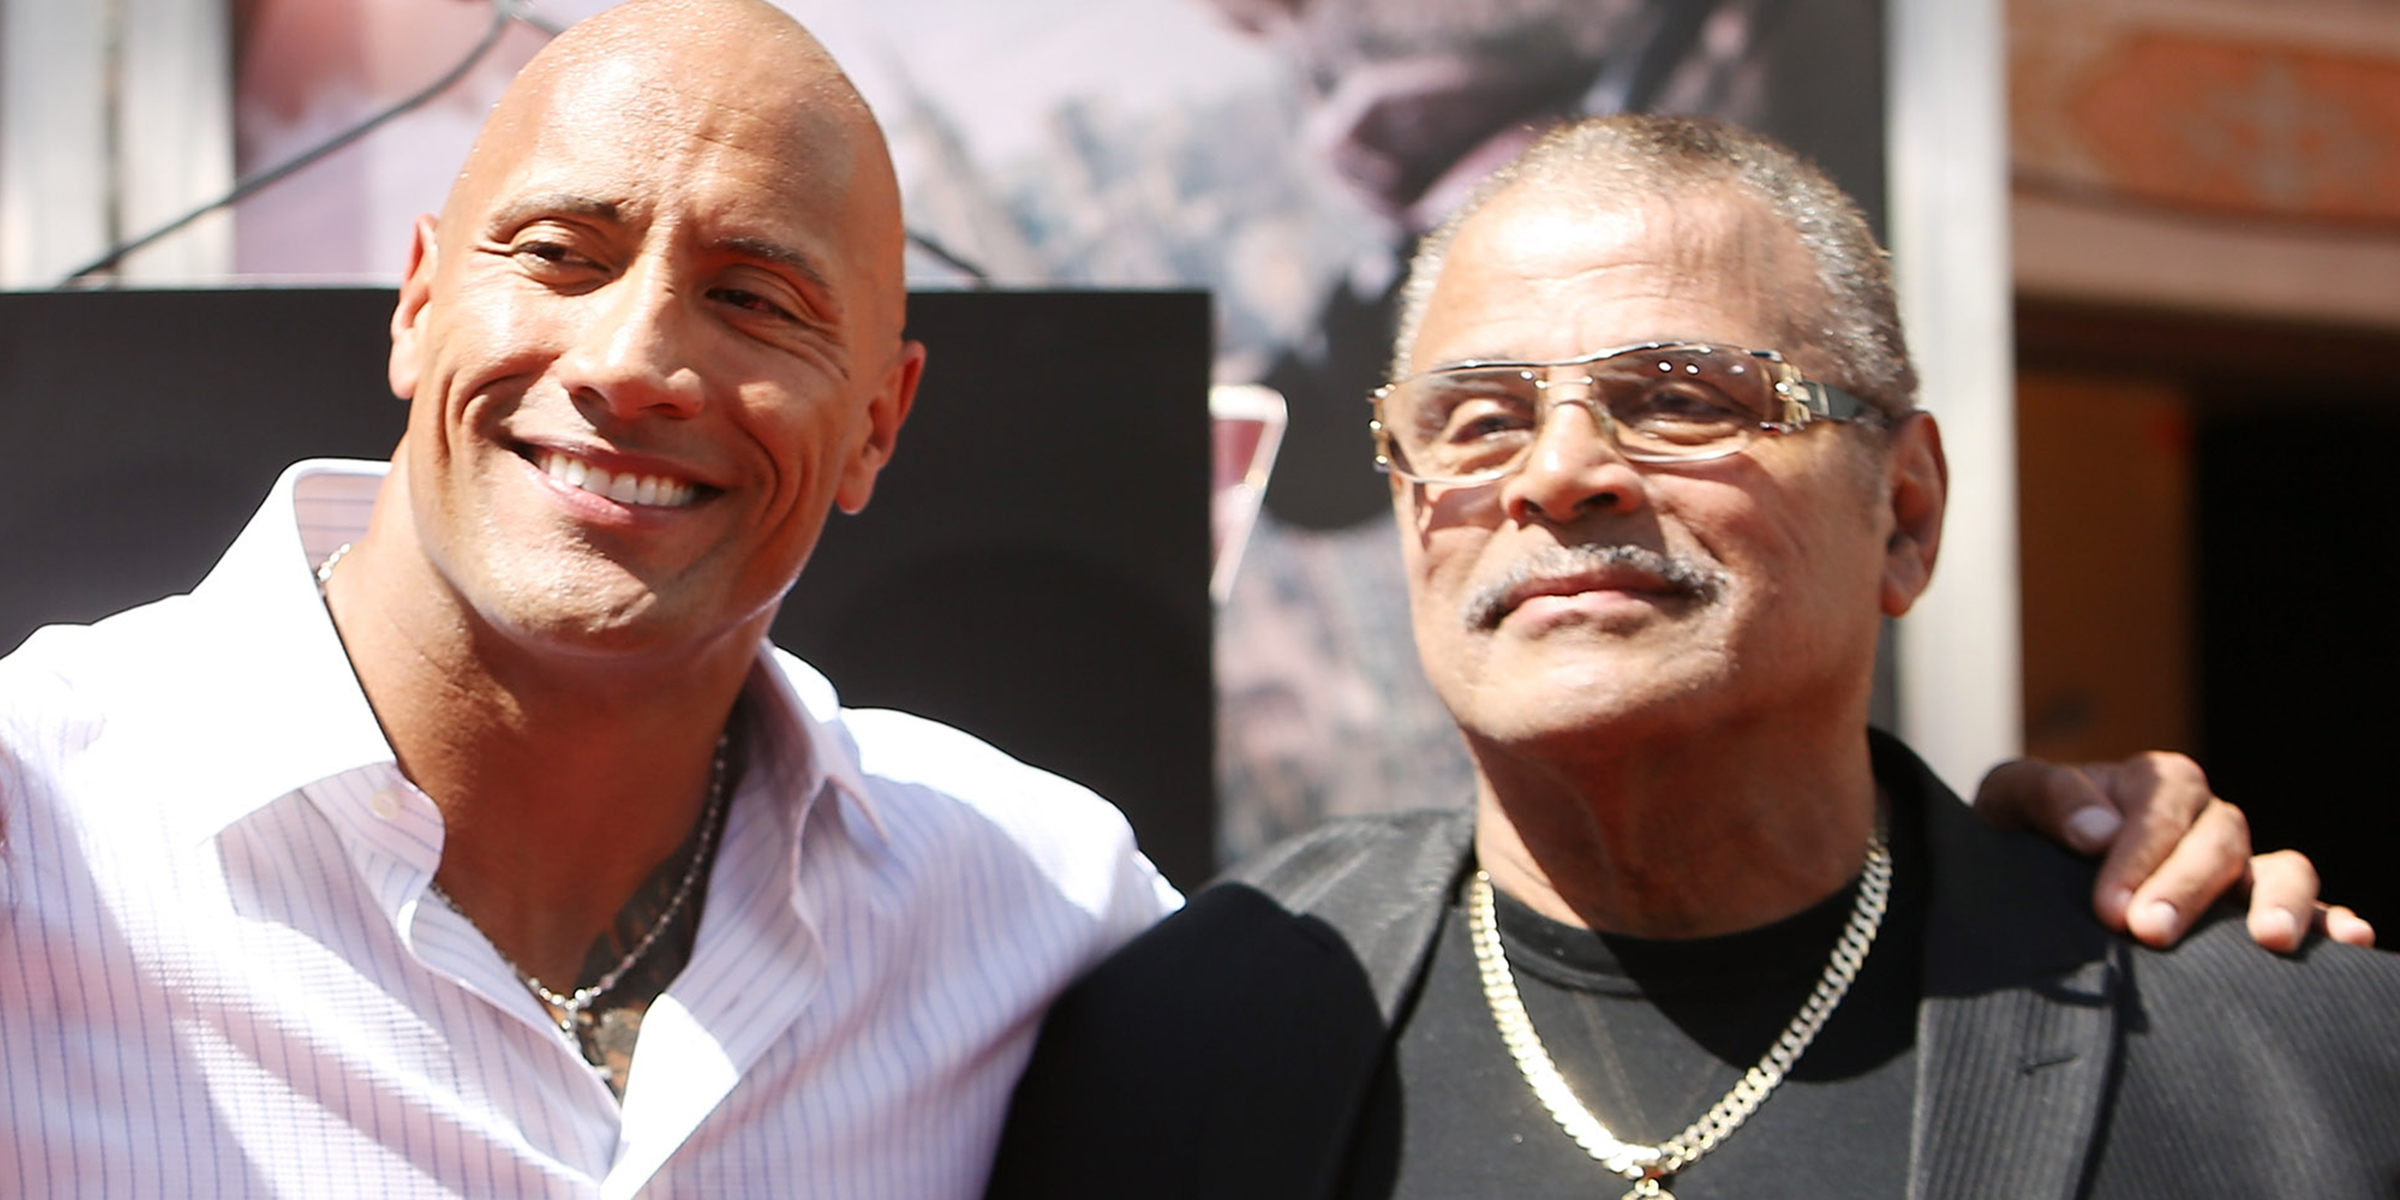 Dwayne Johnson pays tribute to late father on Instagram